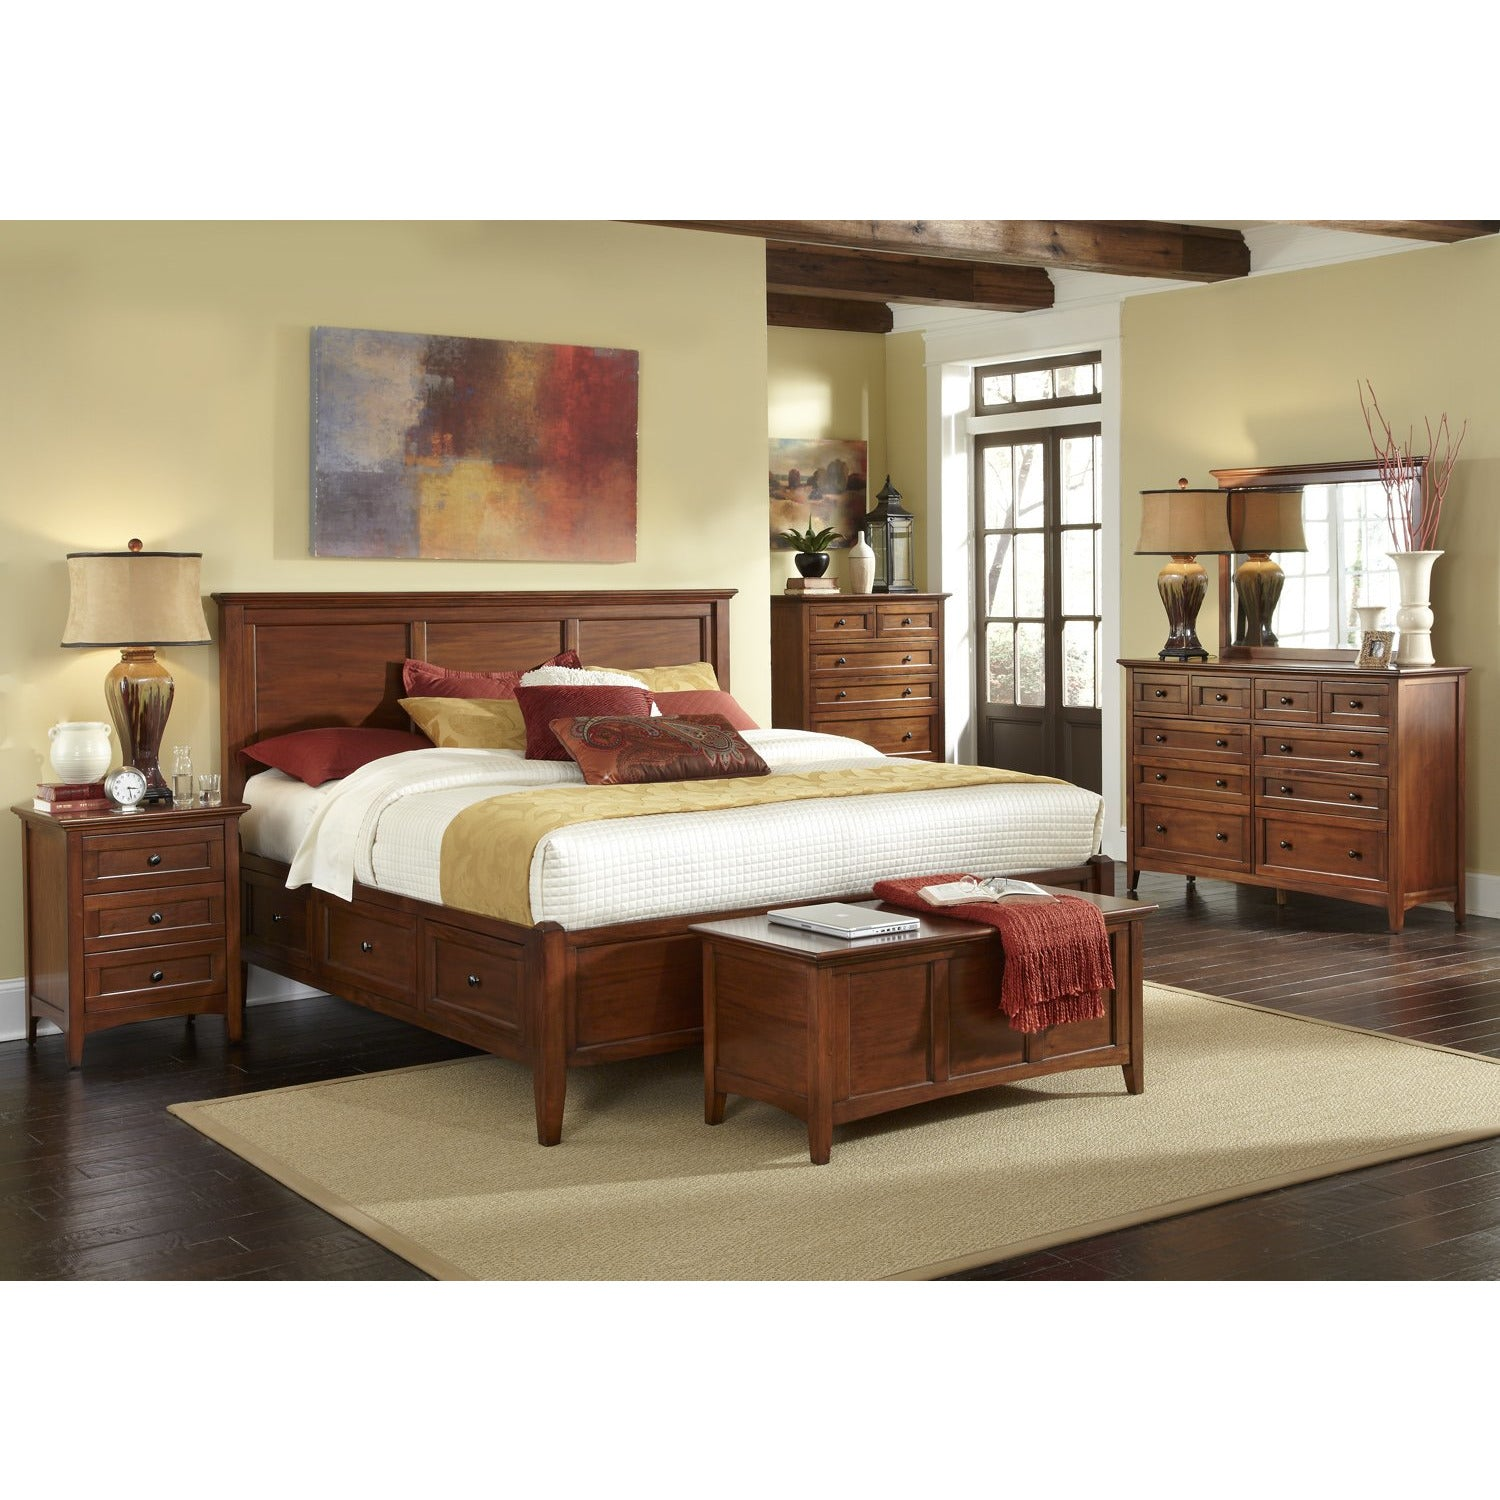 Westlake Storage Bedroom Group